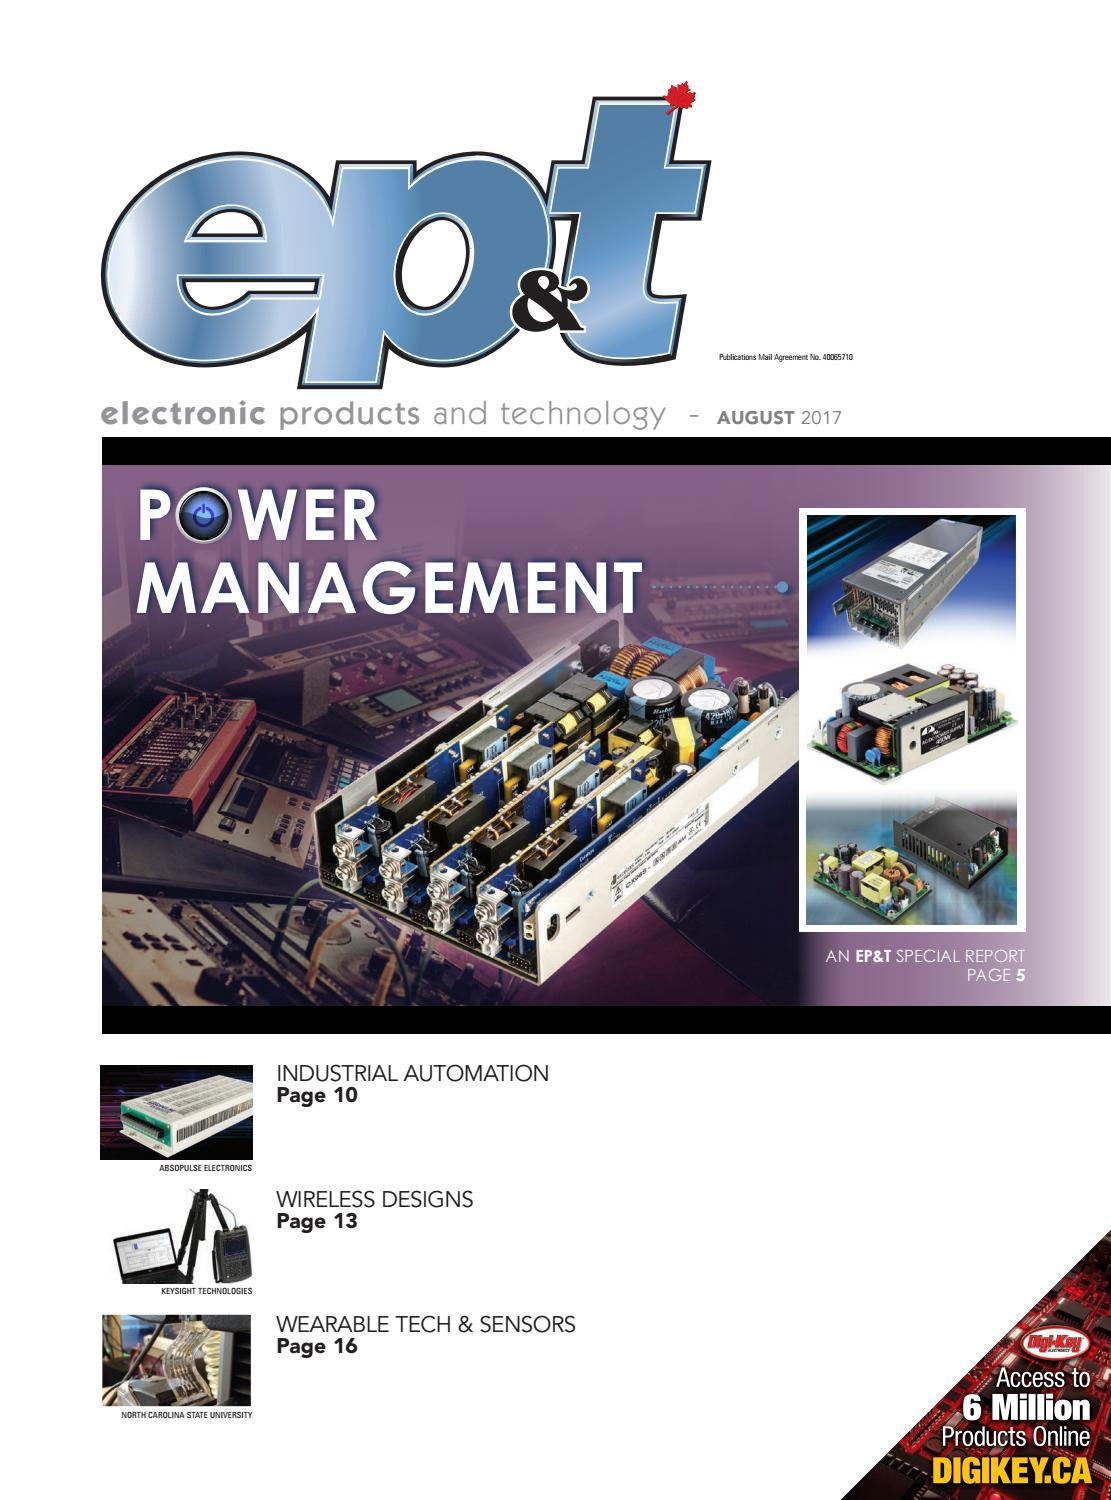 Electronic Products and Technology August 2017 by Annex Business